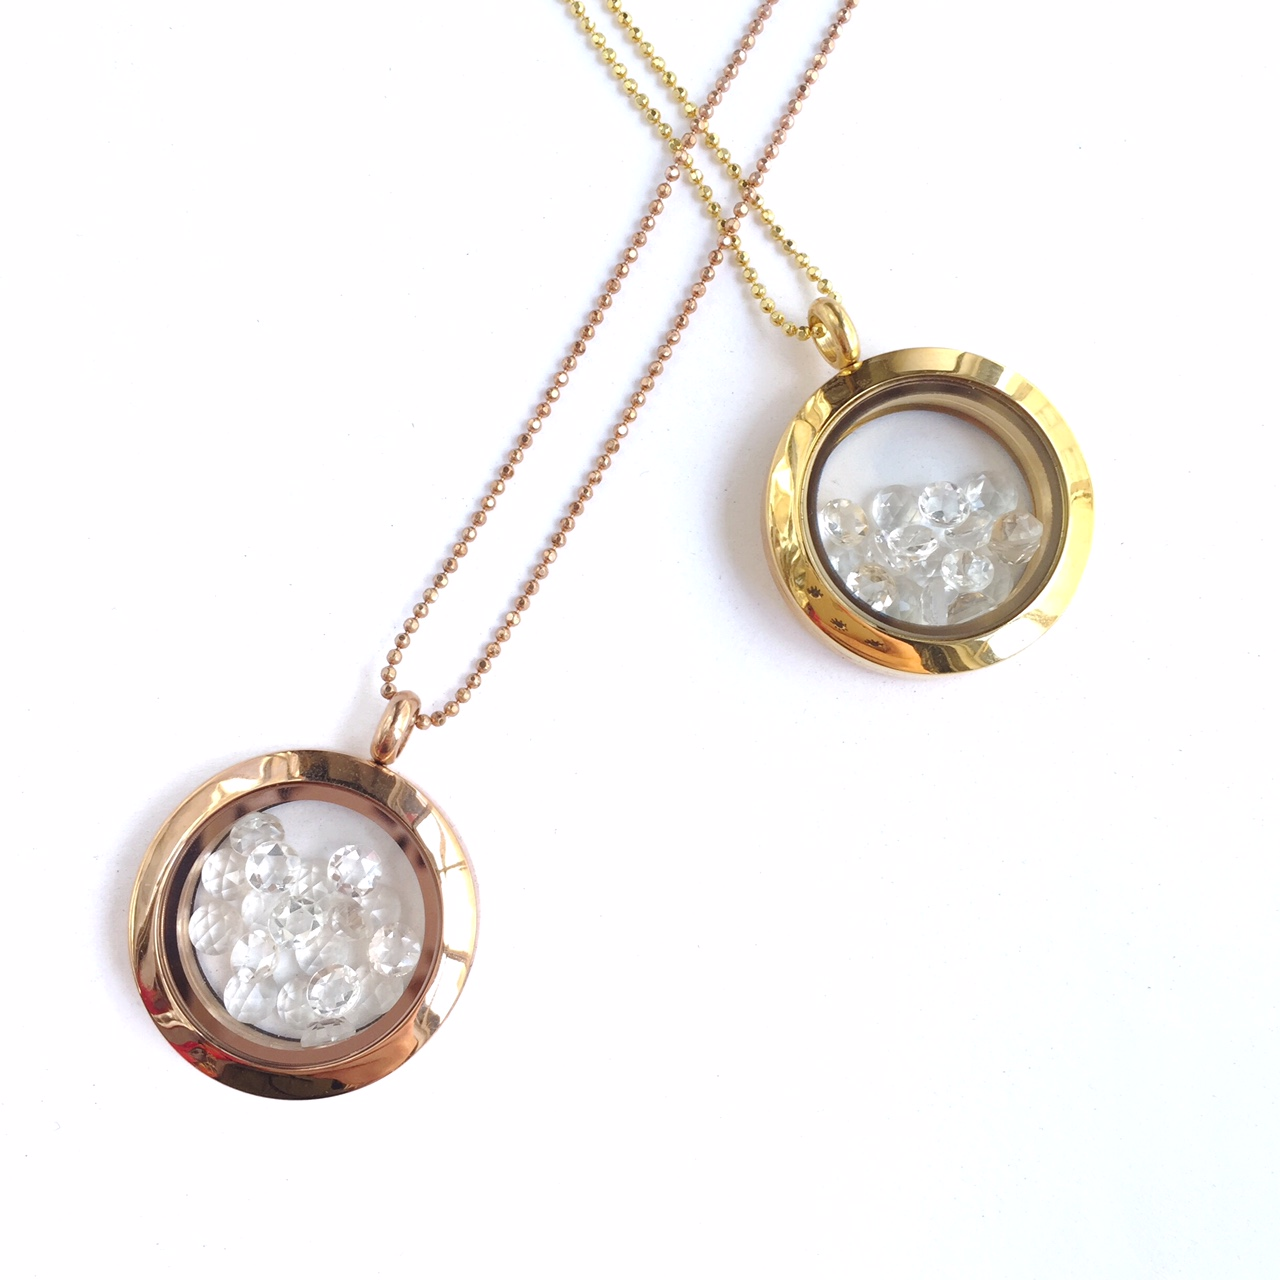 Berget White Topaz Locket Necklace